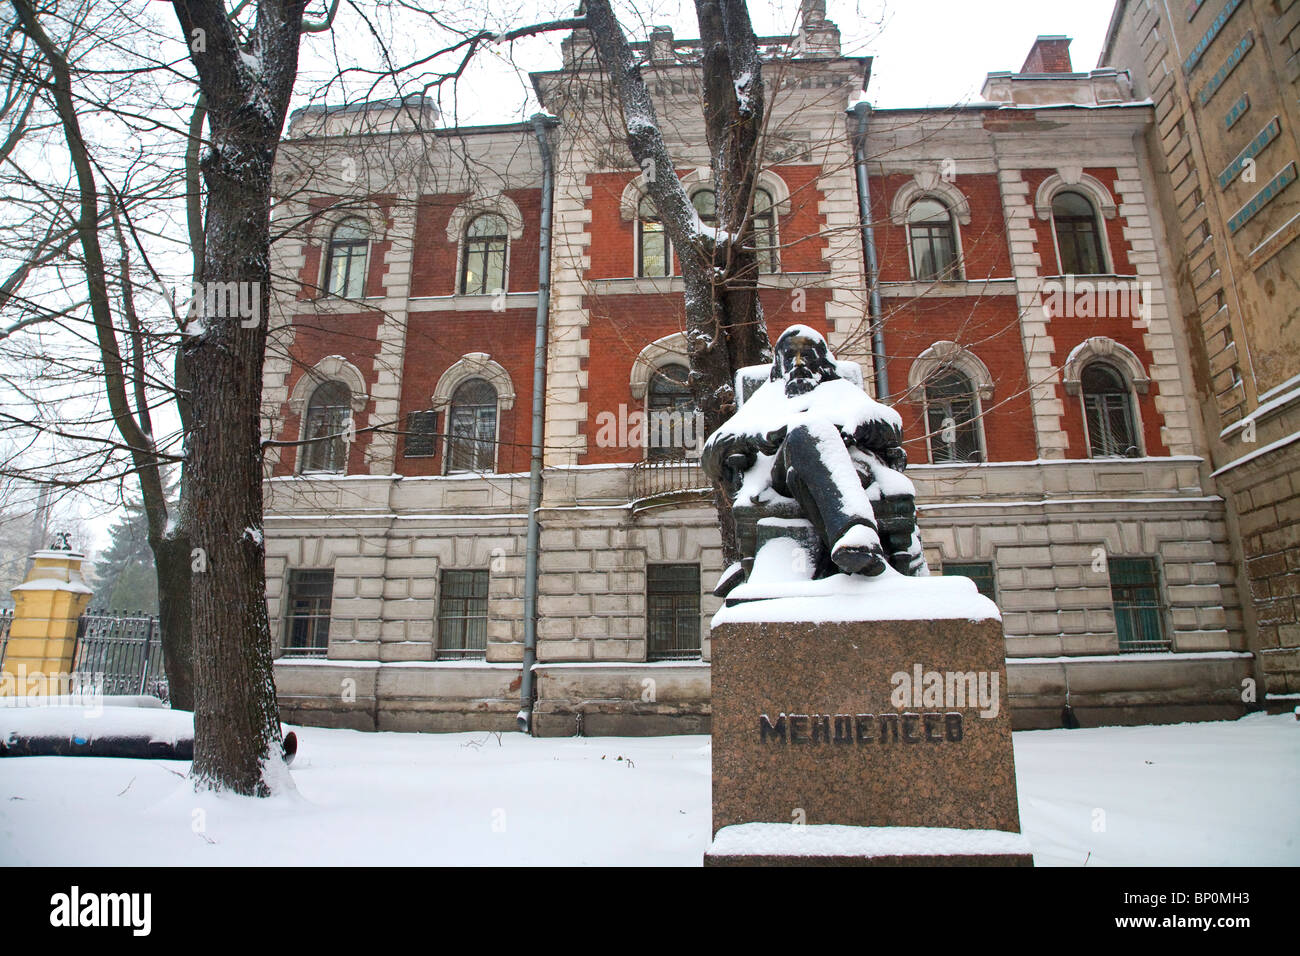 russia st petersburg a monument to mendeleev a russian russia st petersburg a monument to mendeleev a russian academic stock photo